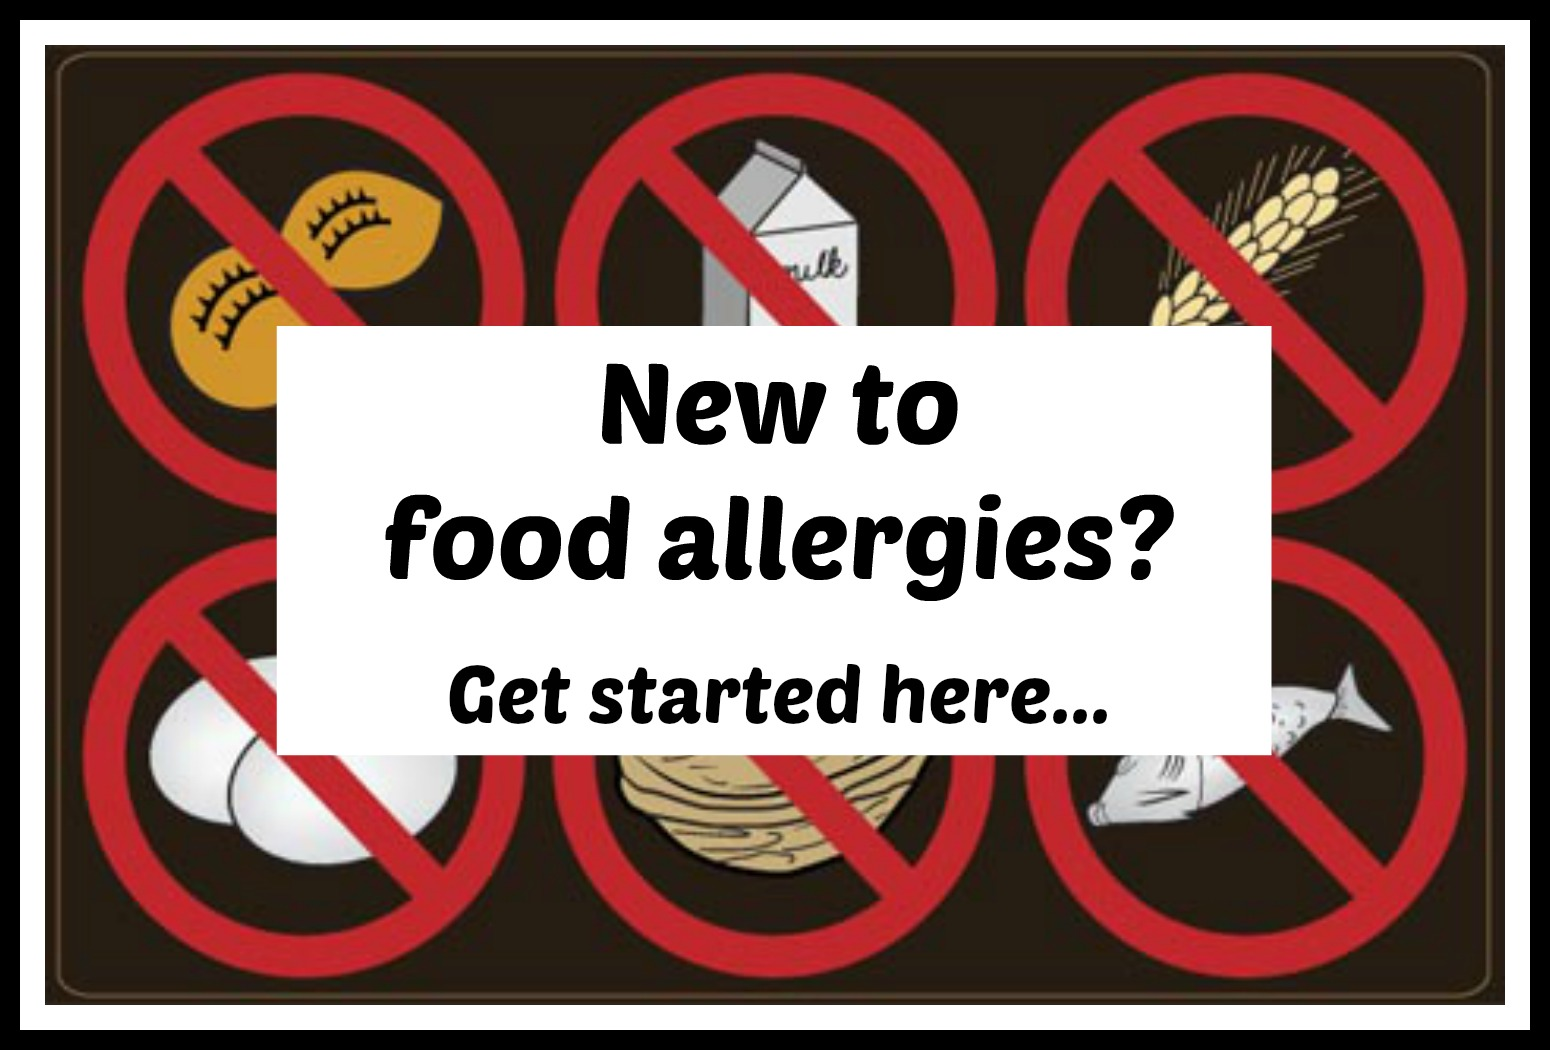 New to allergies?